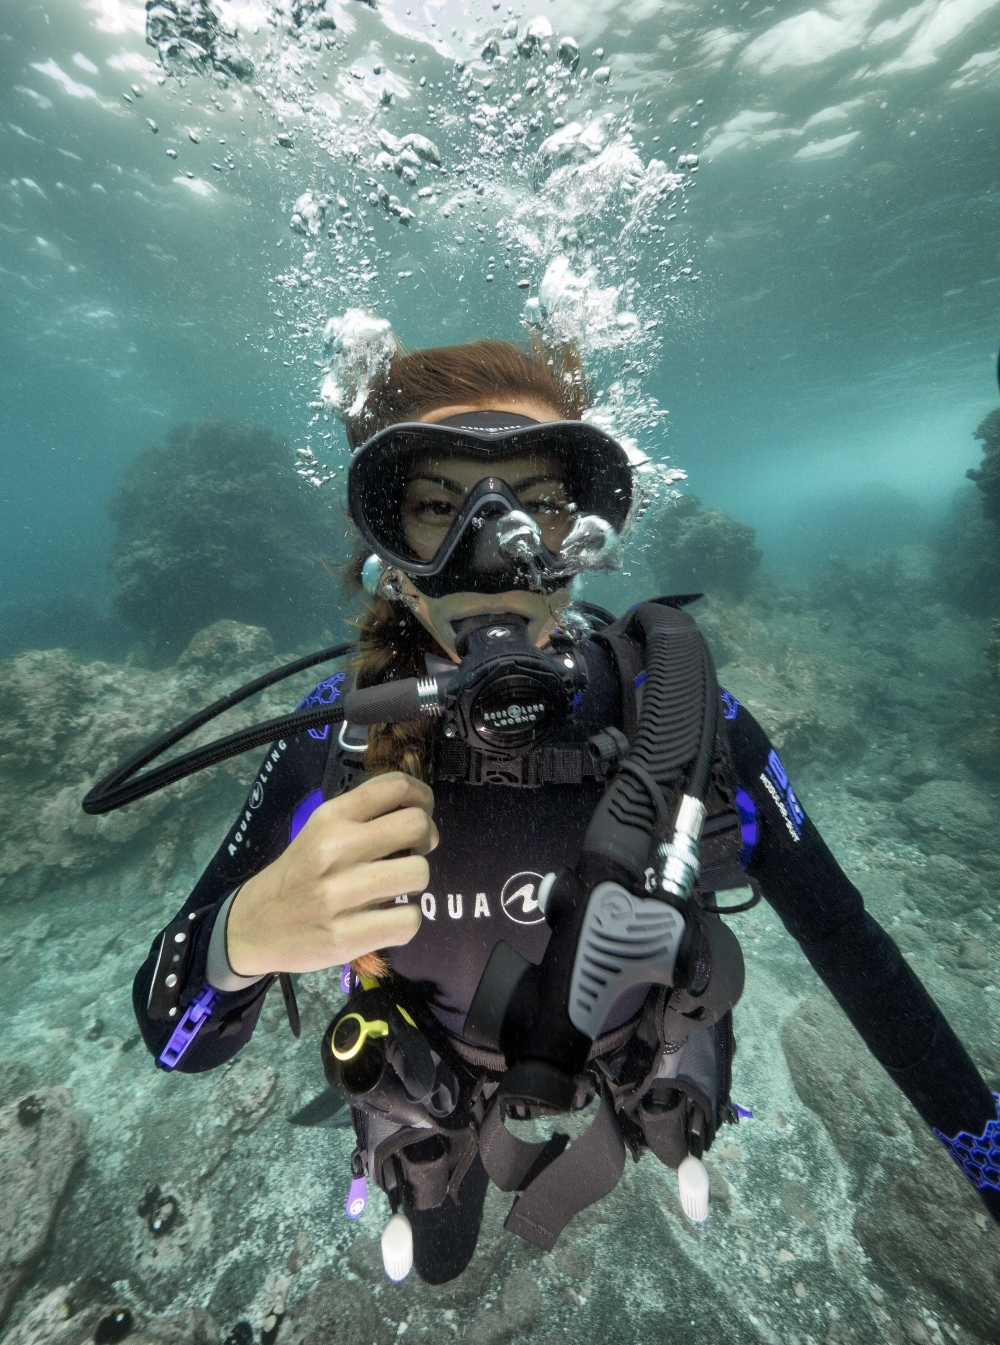 Regulators & Instruments - A safe diver likes to be in control of their situation.Owning your own Breathing Apparatus and Instruments ensures you have comfort and control over what is an essential part of your equipment.See our range of great quality Regulators, Gauges & Dive Computers!